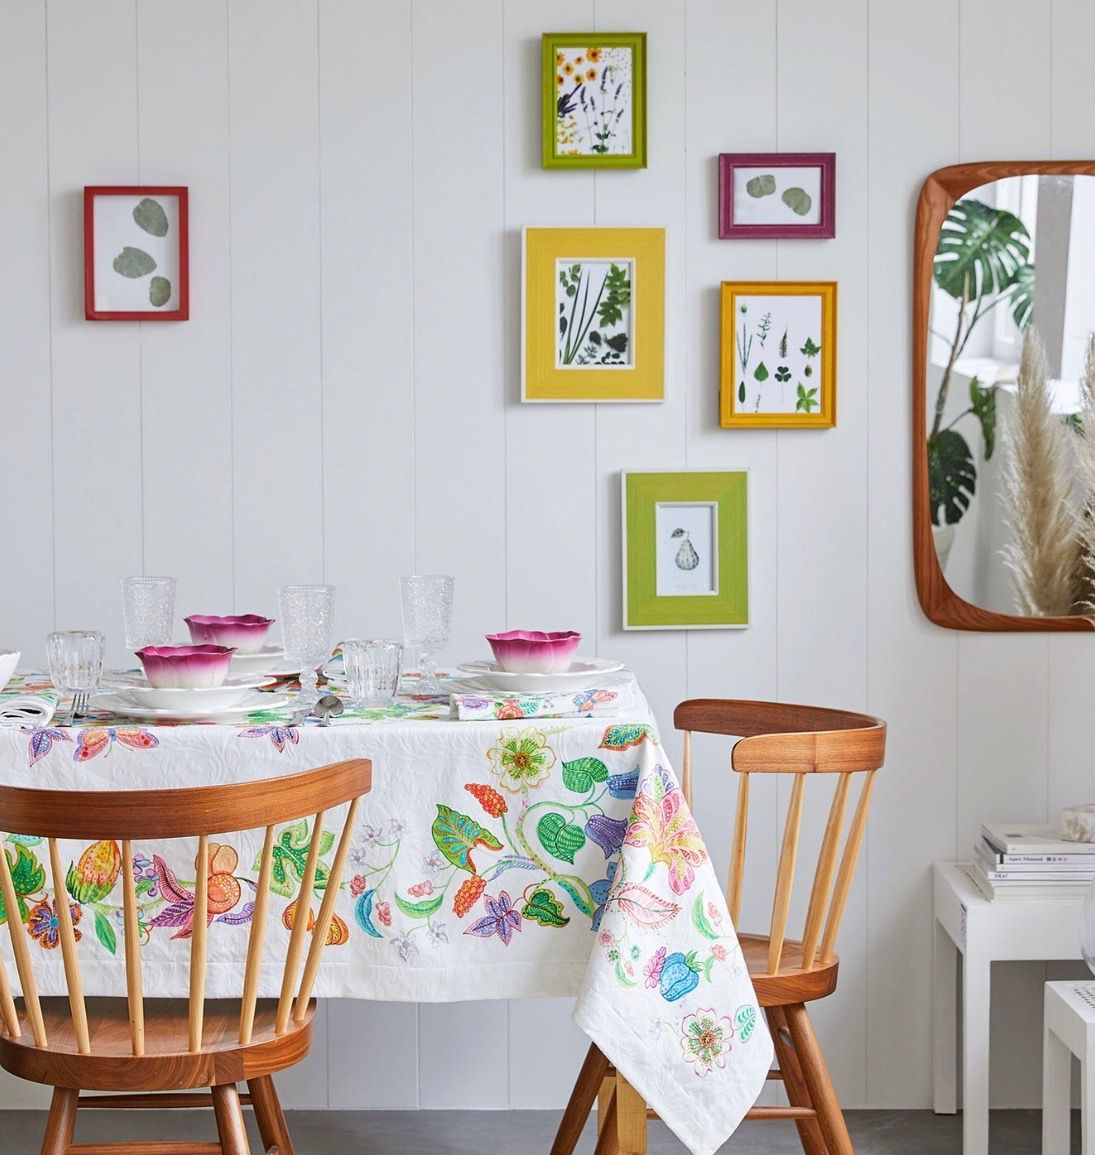 Room Cute brightly colored simple framed wall